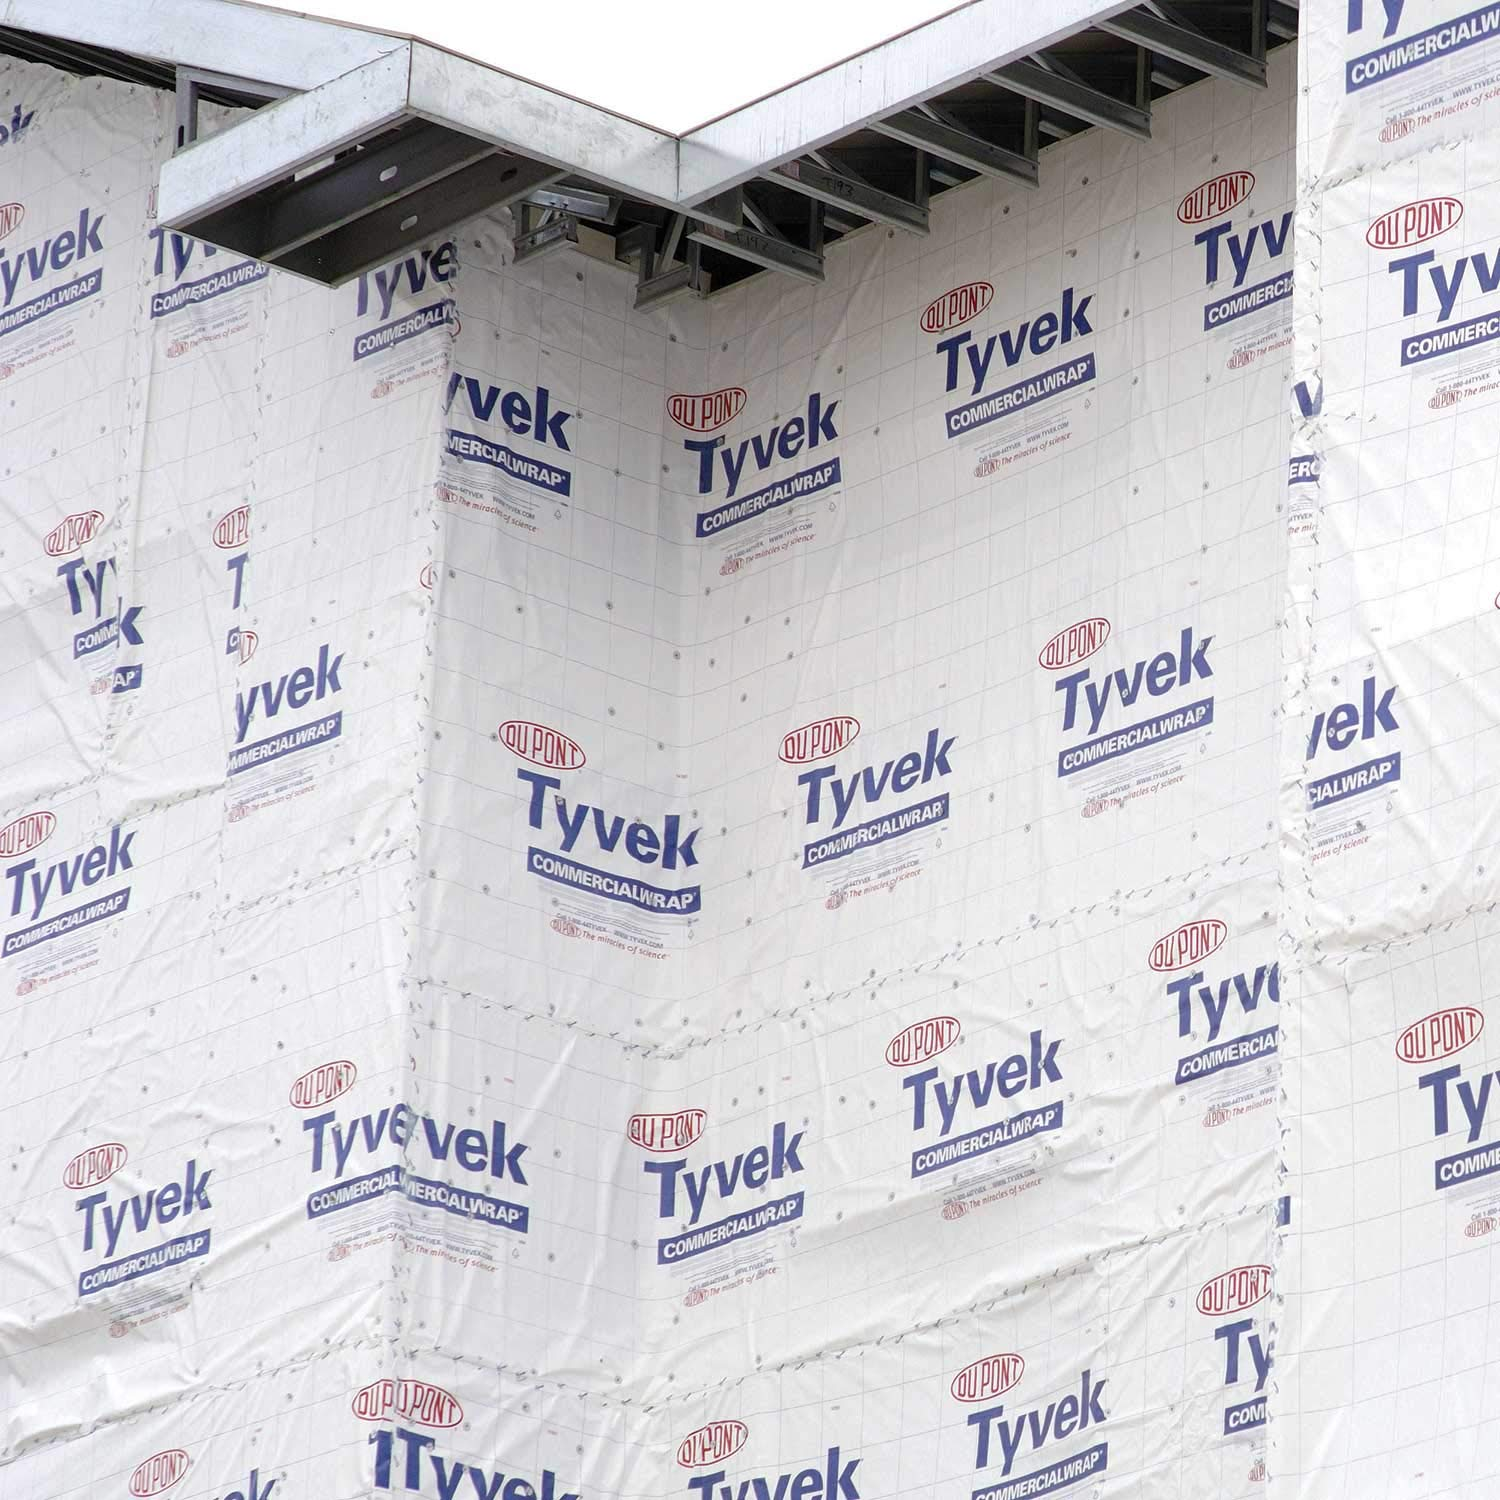 DuPont Tyvek CommercialWrap Home Wrap - 5' x 200' Roll by DuPont